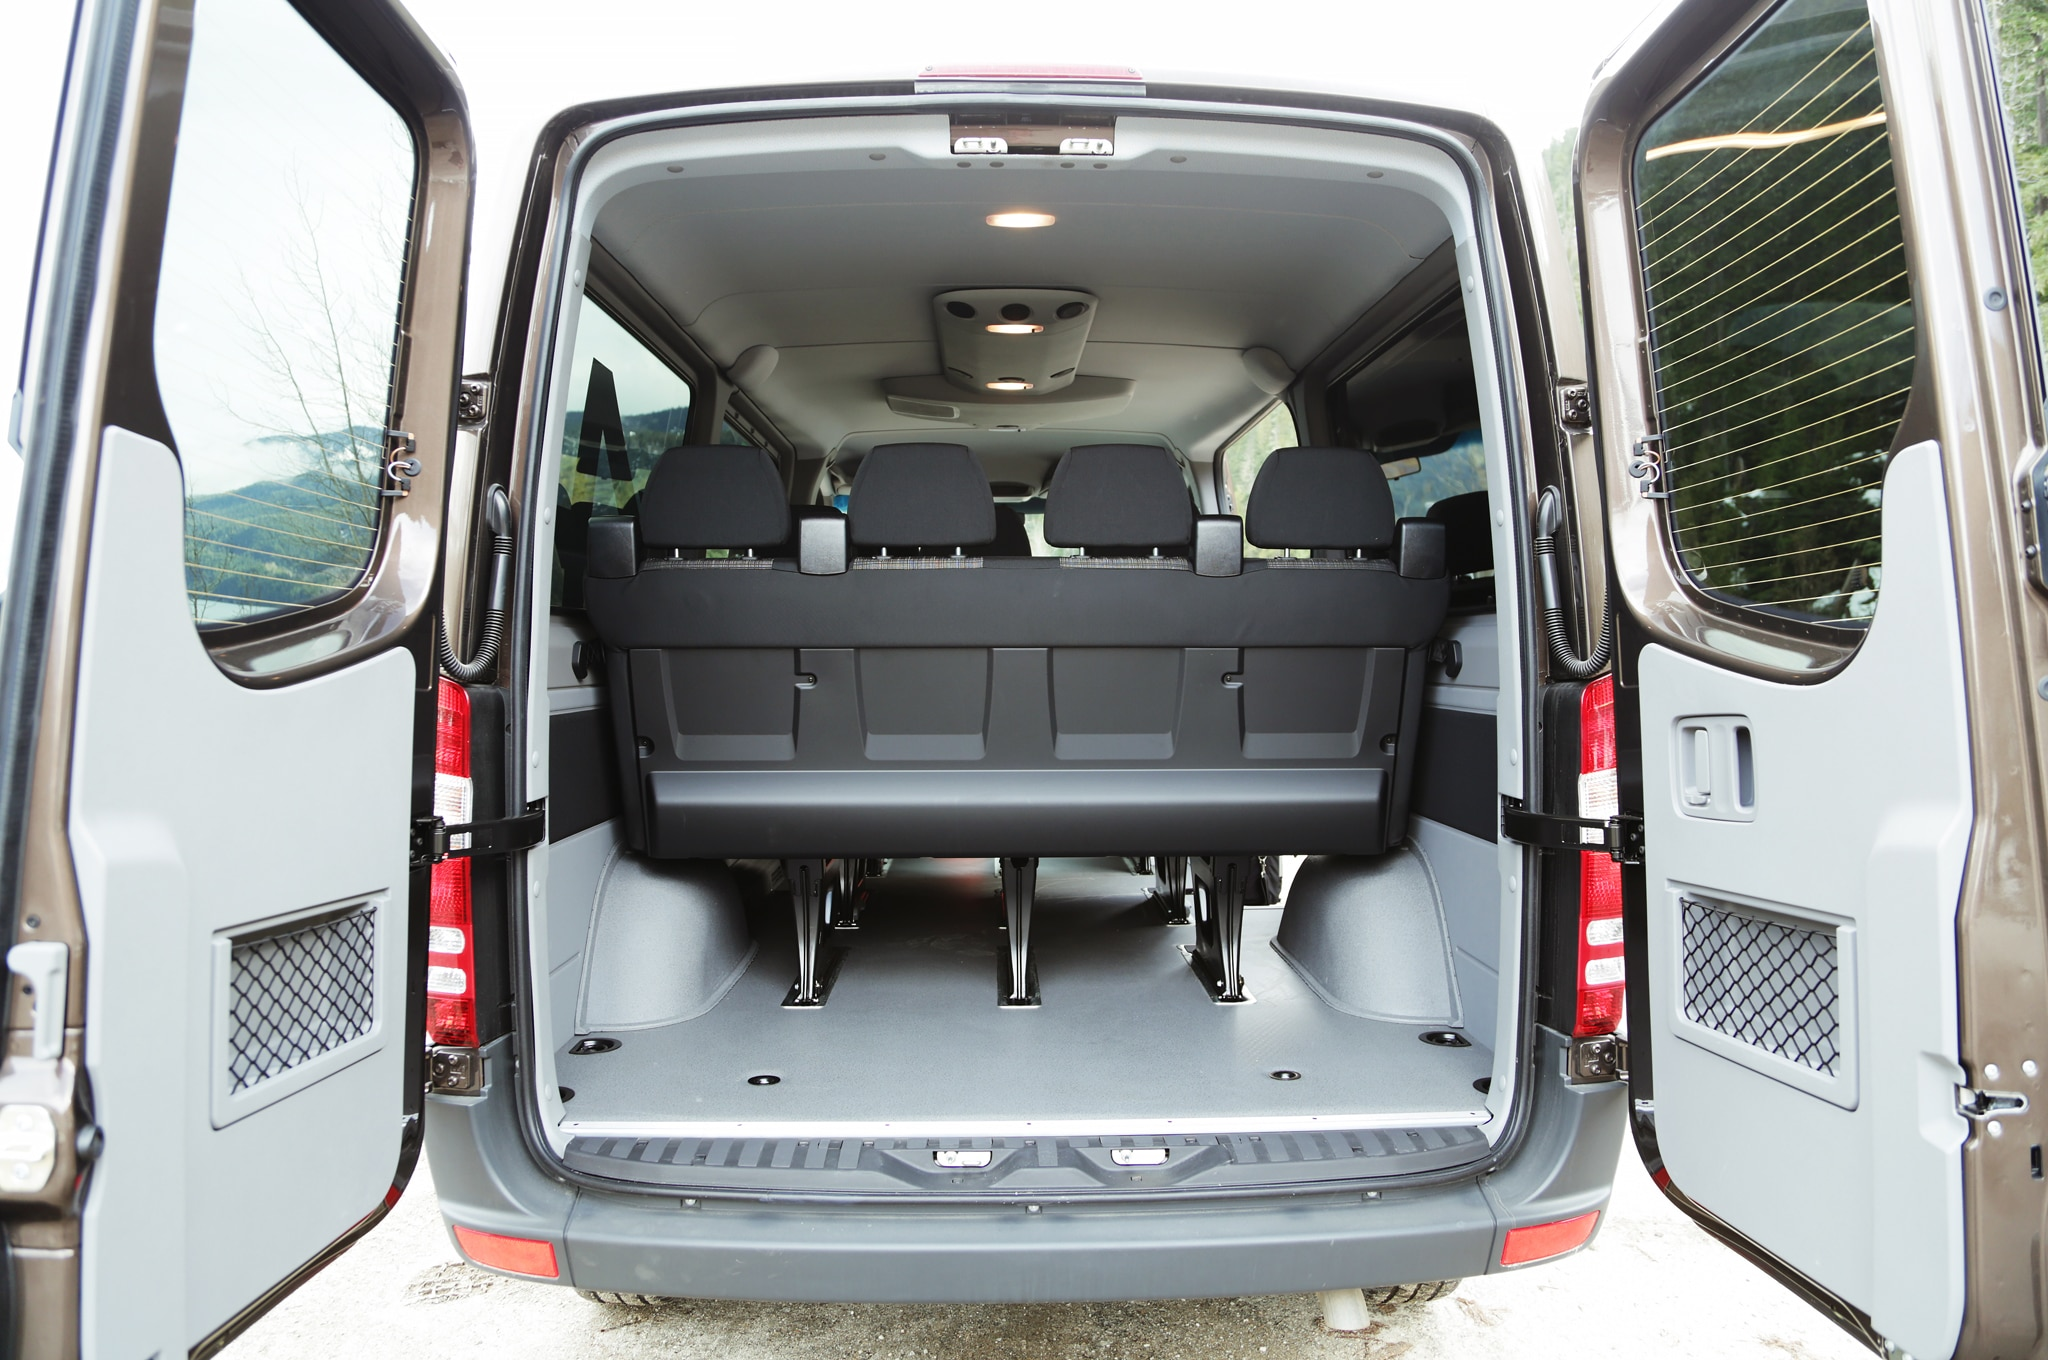 Mercedes Benz Sprinter Worker Offers Van Capability For Less Coinss Coin